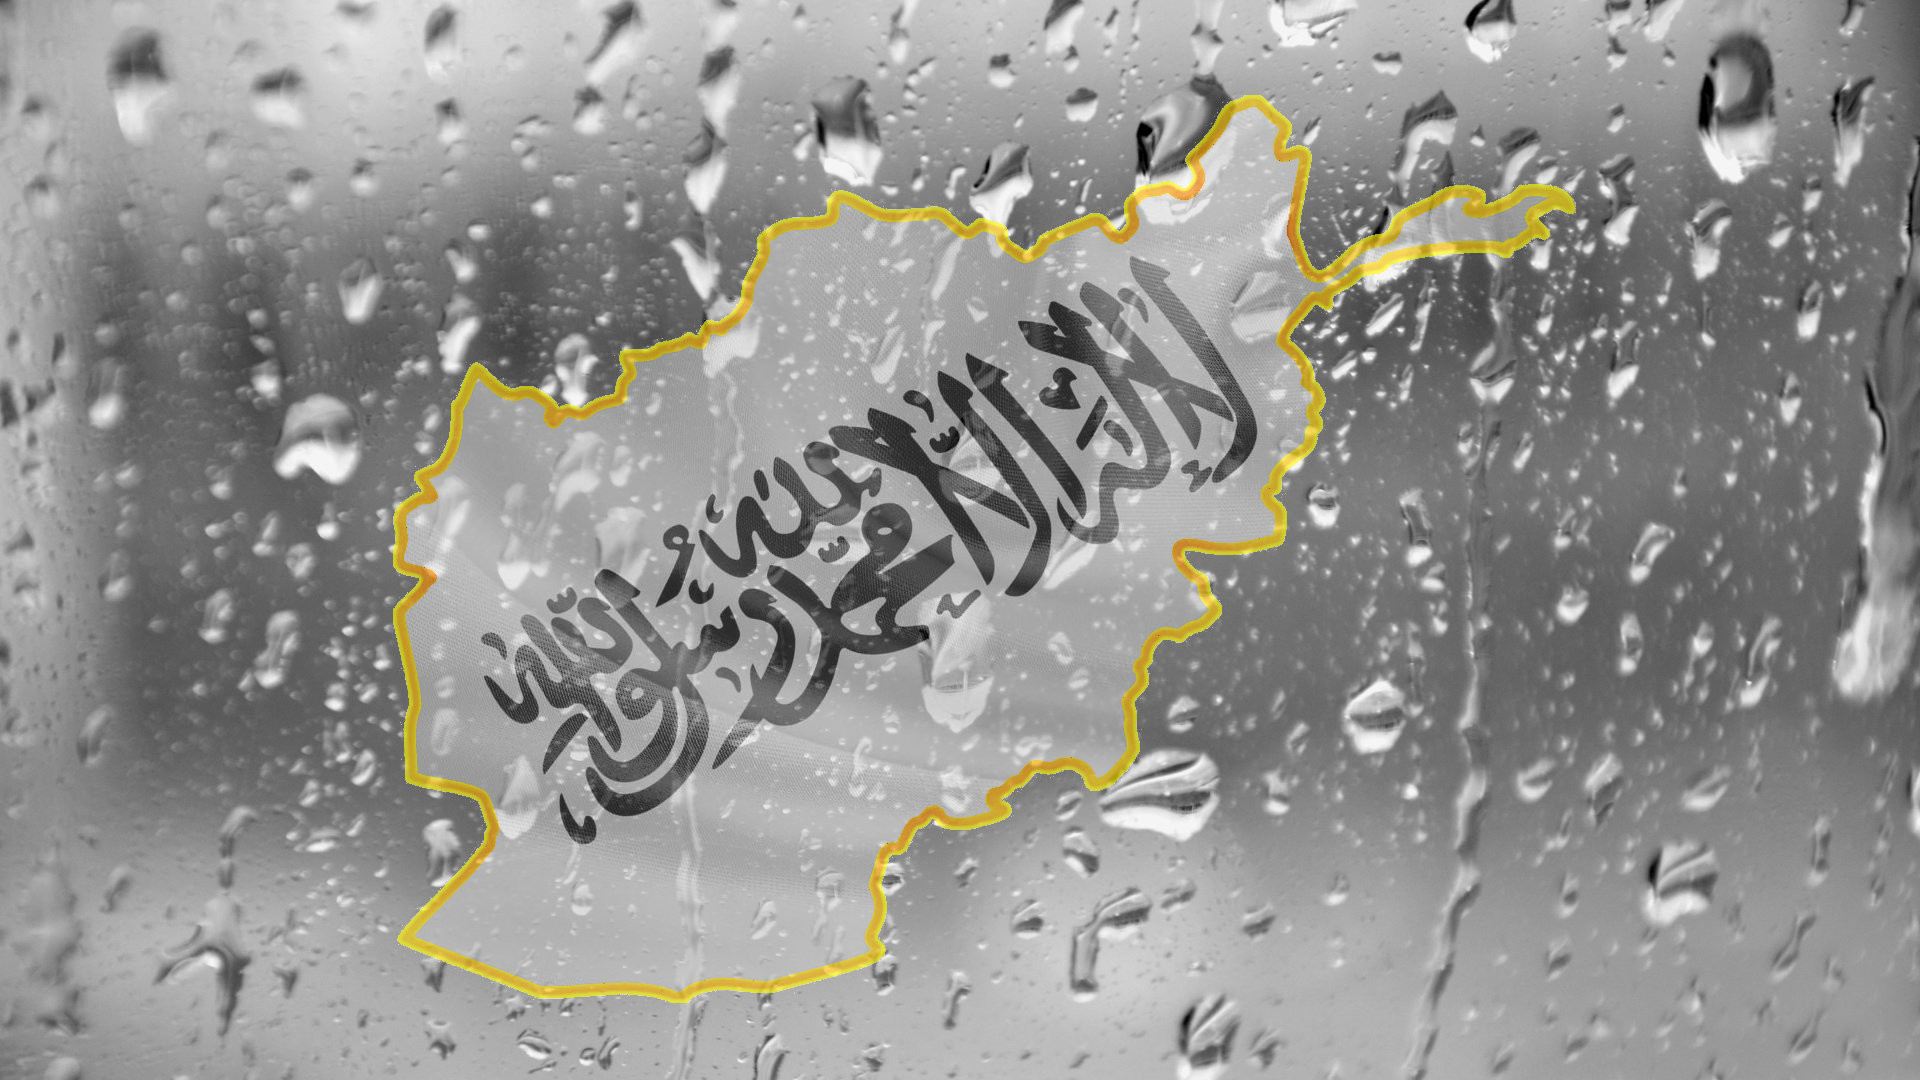 1920x1080 ... beautiful-flag-map-of Afghanistan-Rain-wallpaper by GULTALIBk